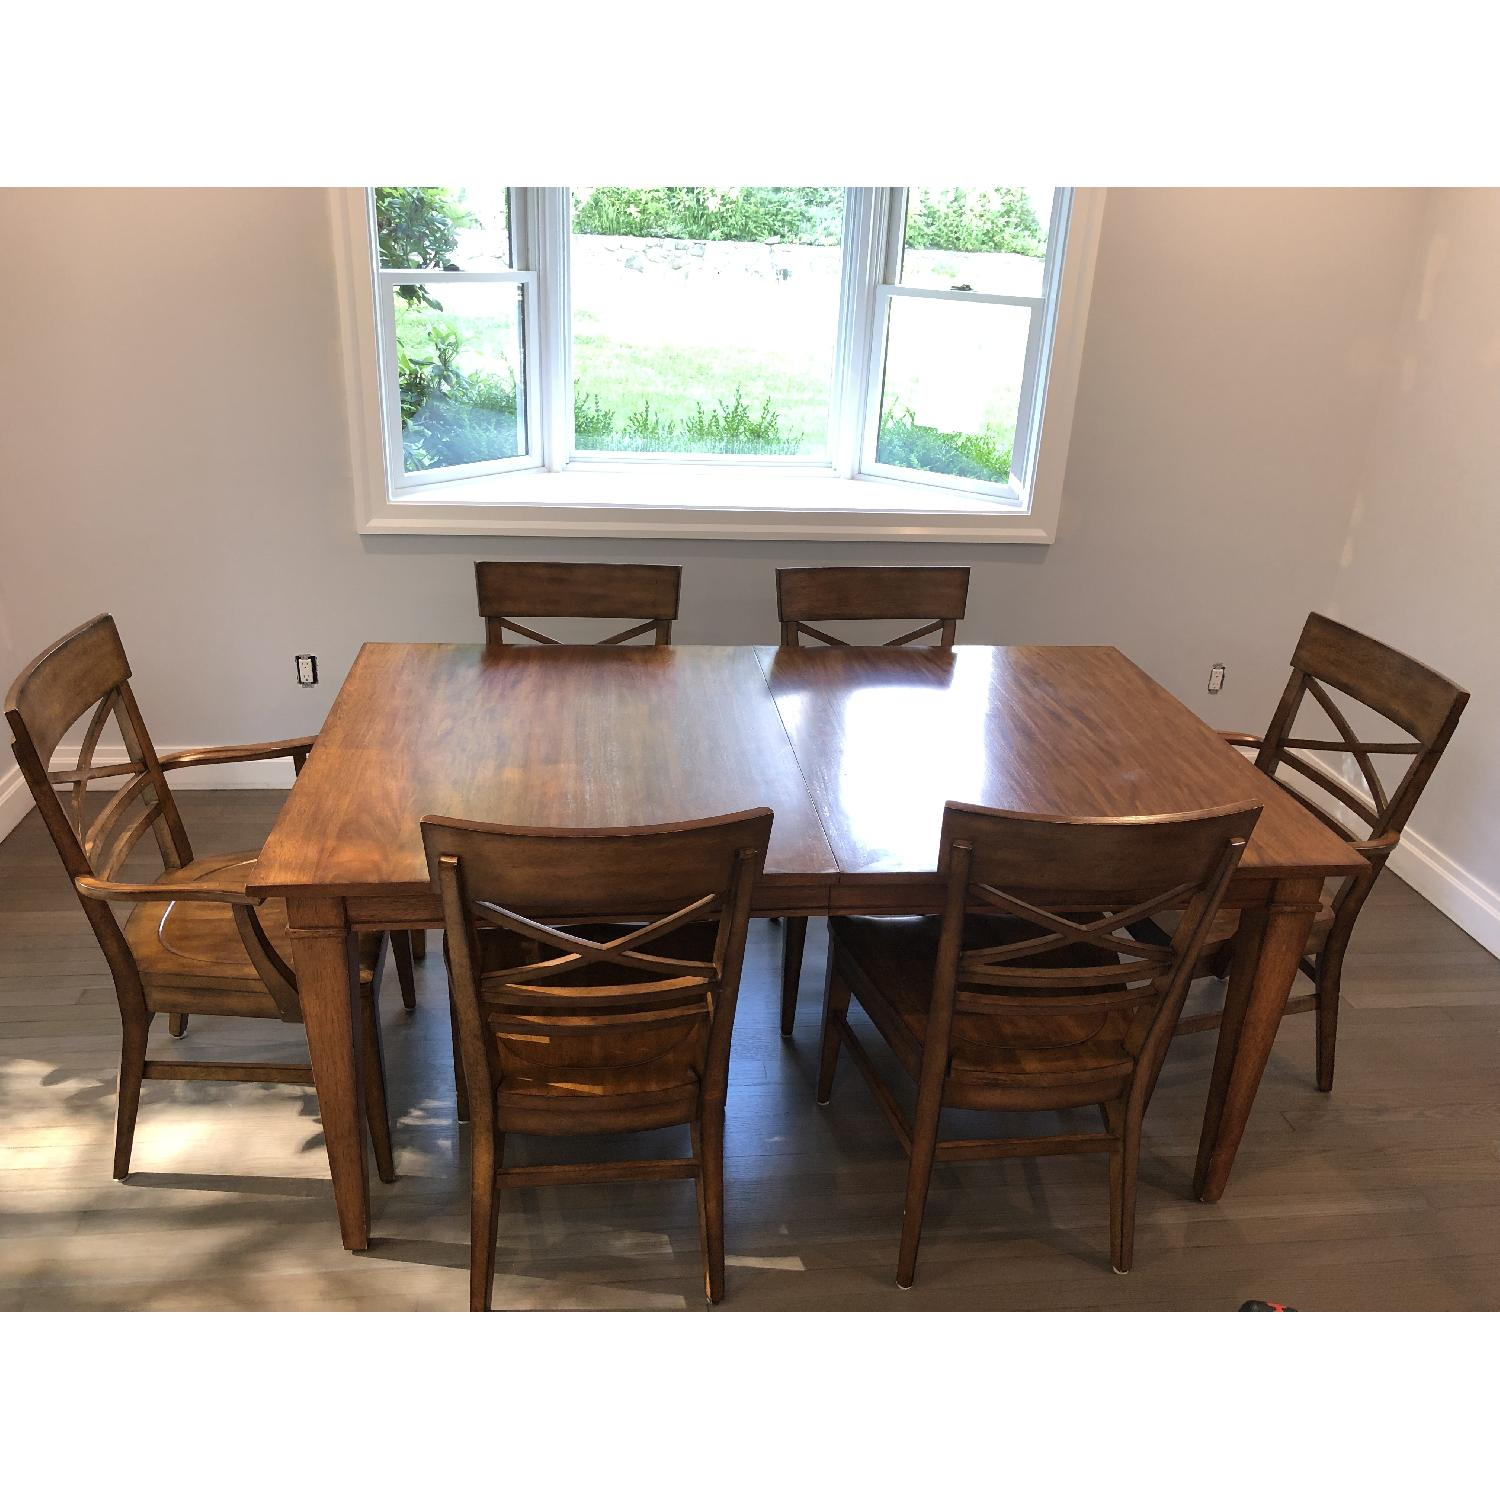 Ethan Allen Extension Dining Table w/ 6 Chairs - image-2